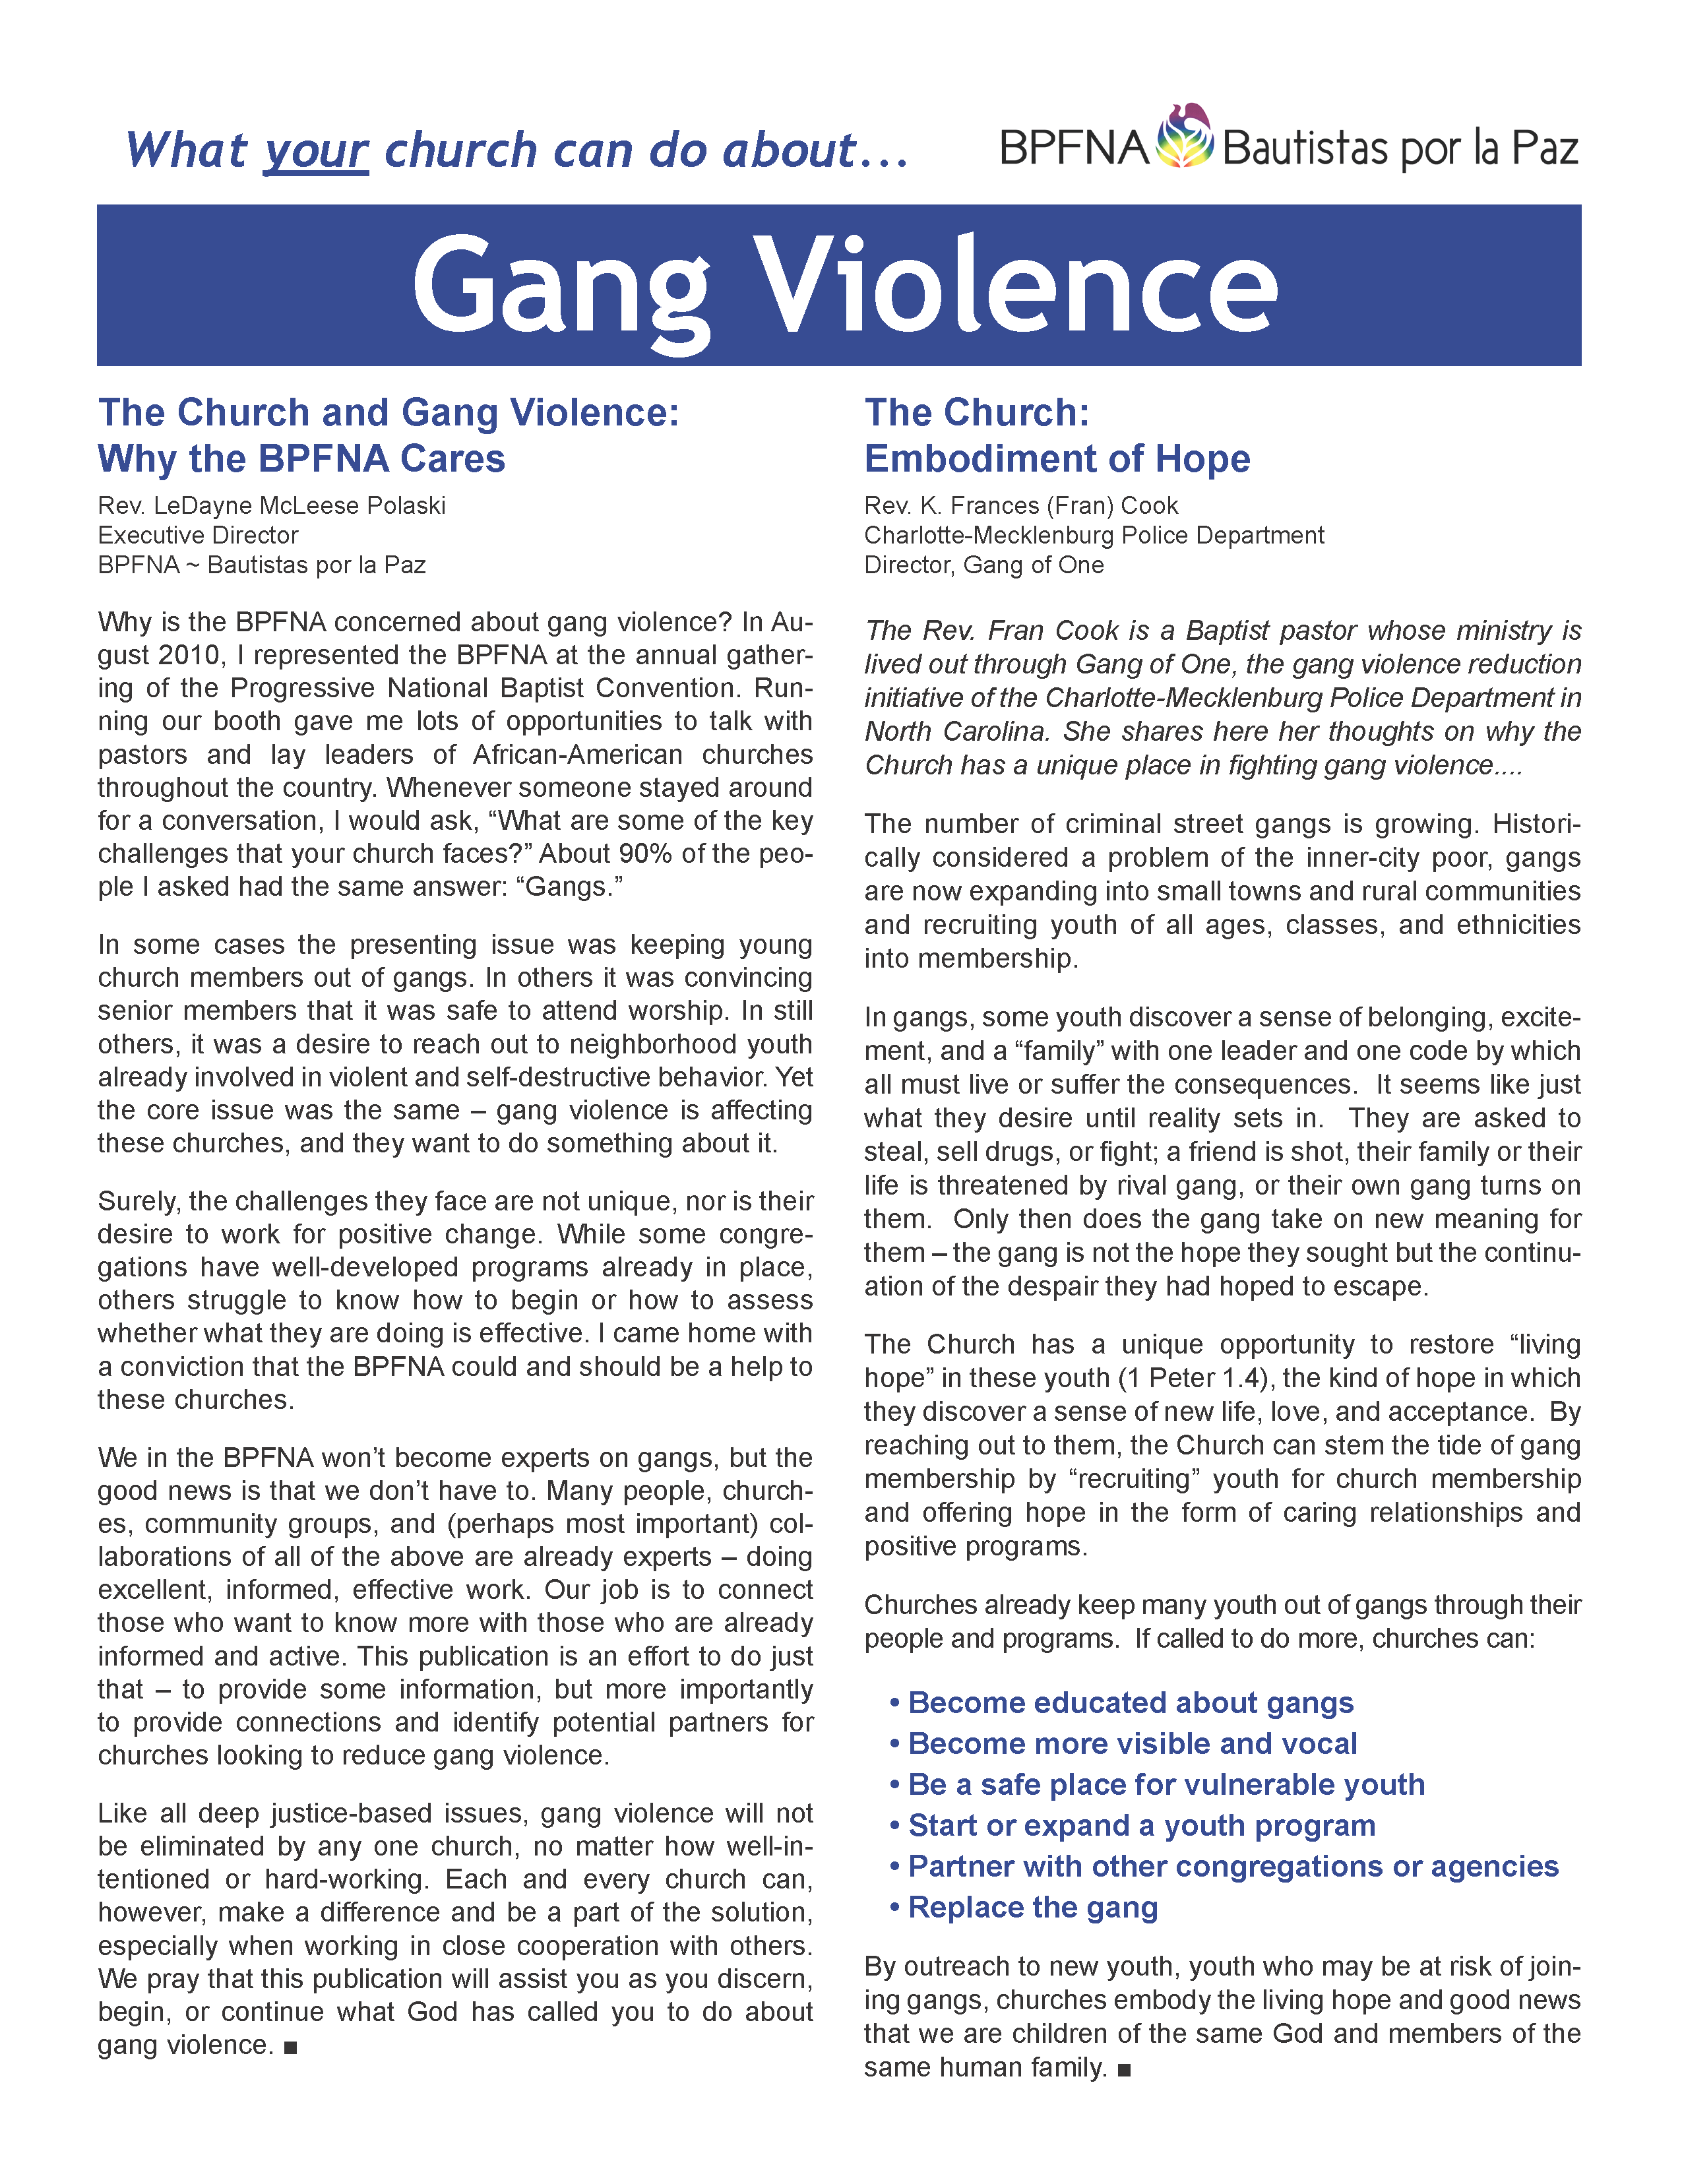 Thumbnail of What Your Church Can Do About... Gang Violence